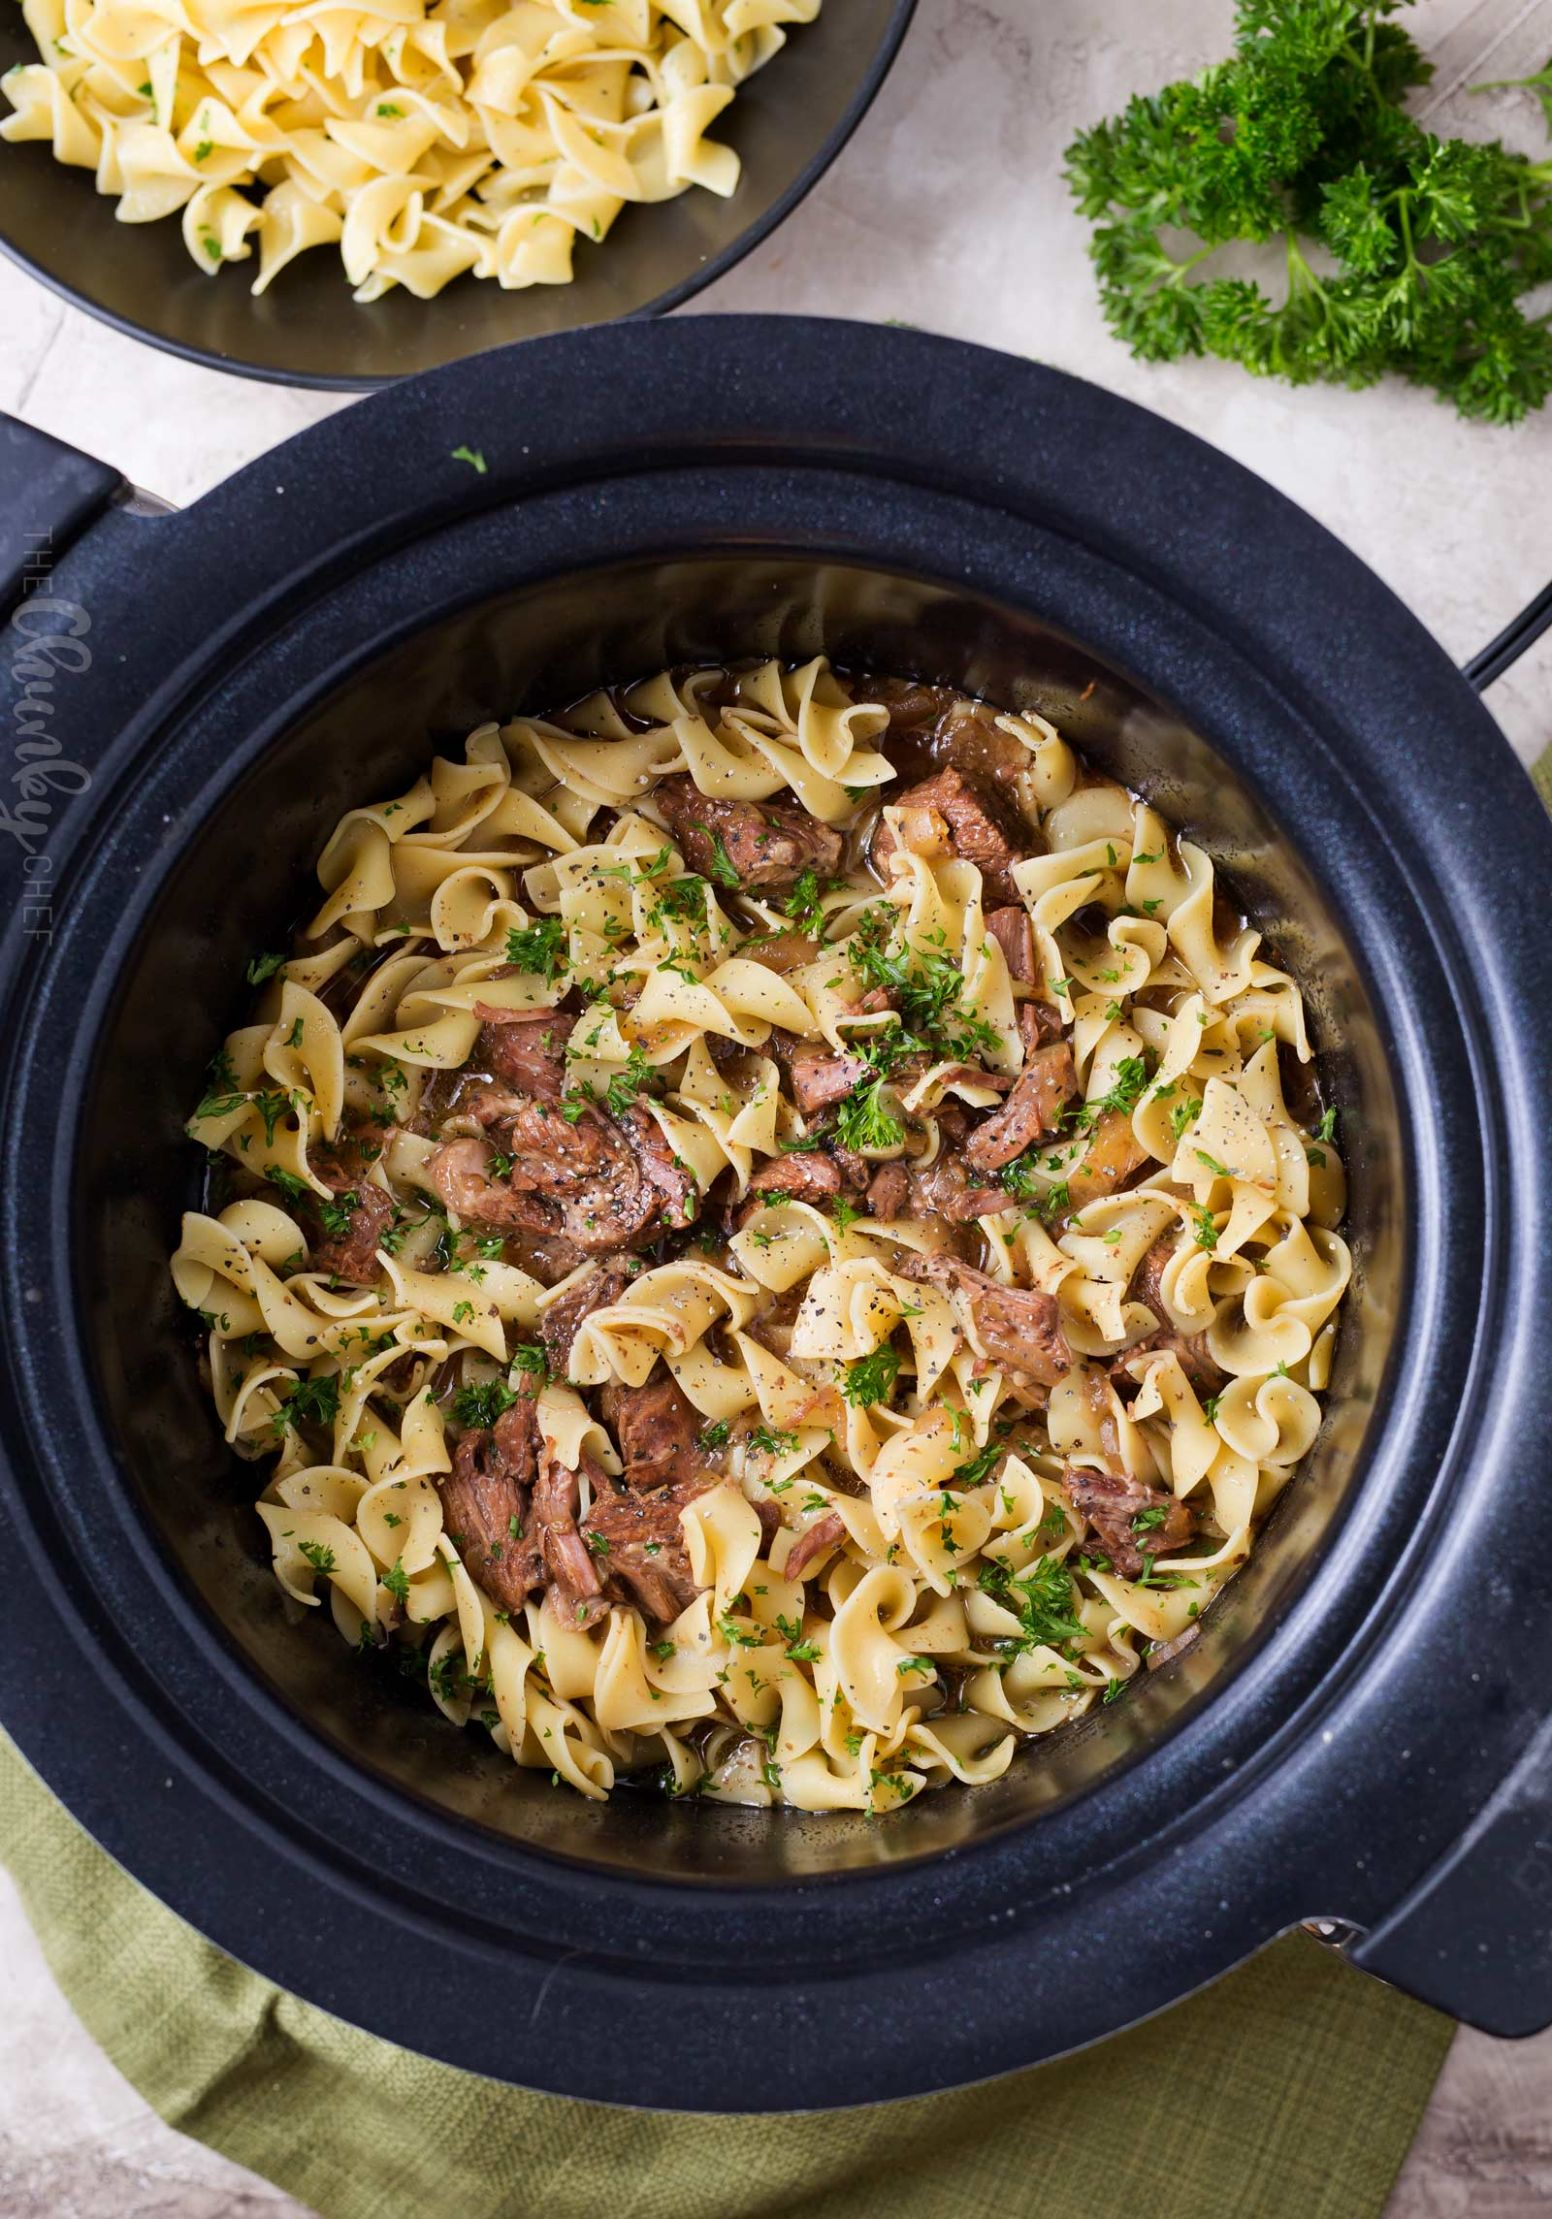 Drunken Slow Cooker Beef Stew (Beef Carbonnade) - The Chunky Chef - Summer Recipes With Stew Meat